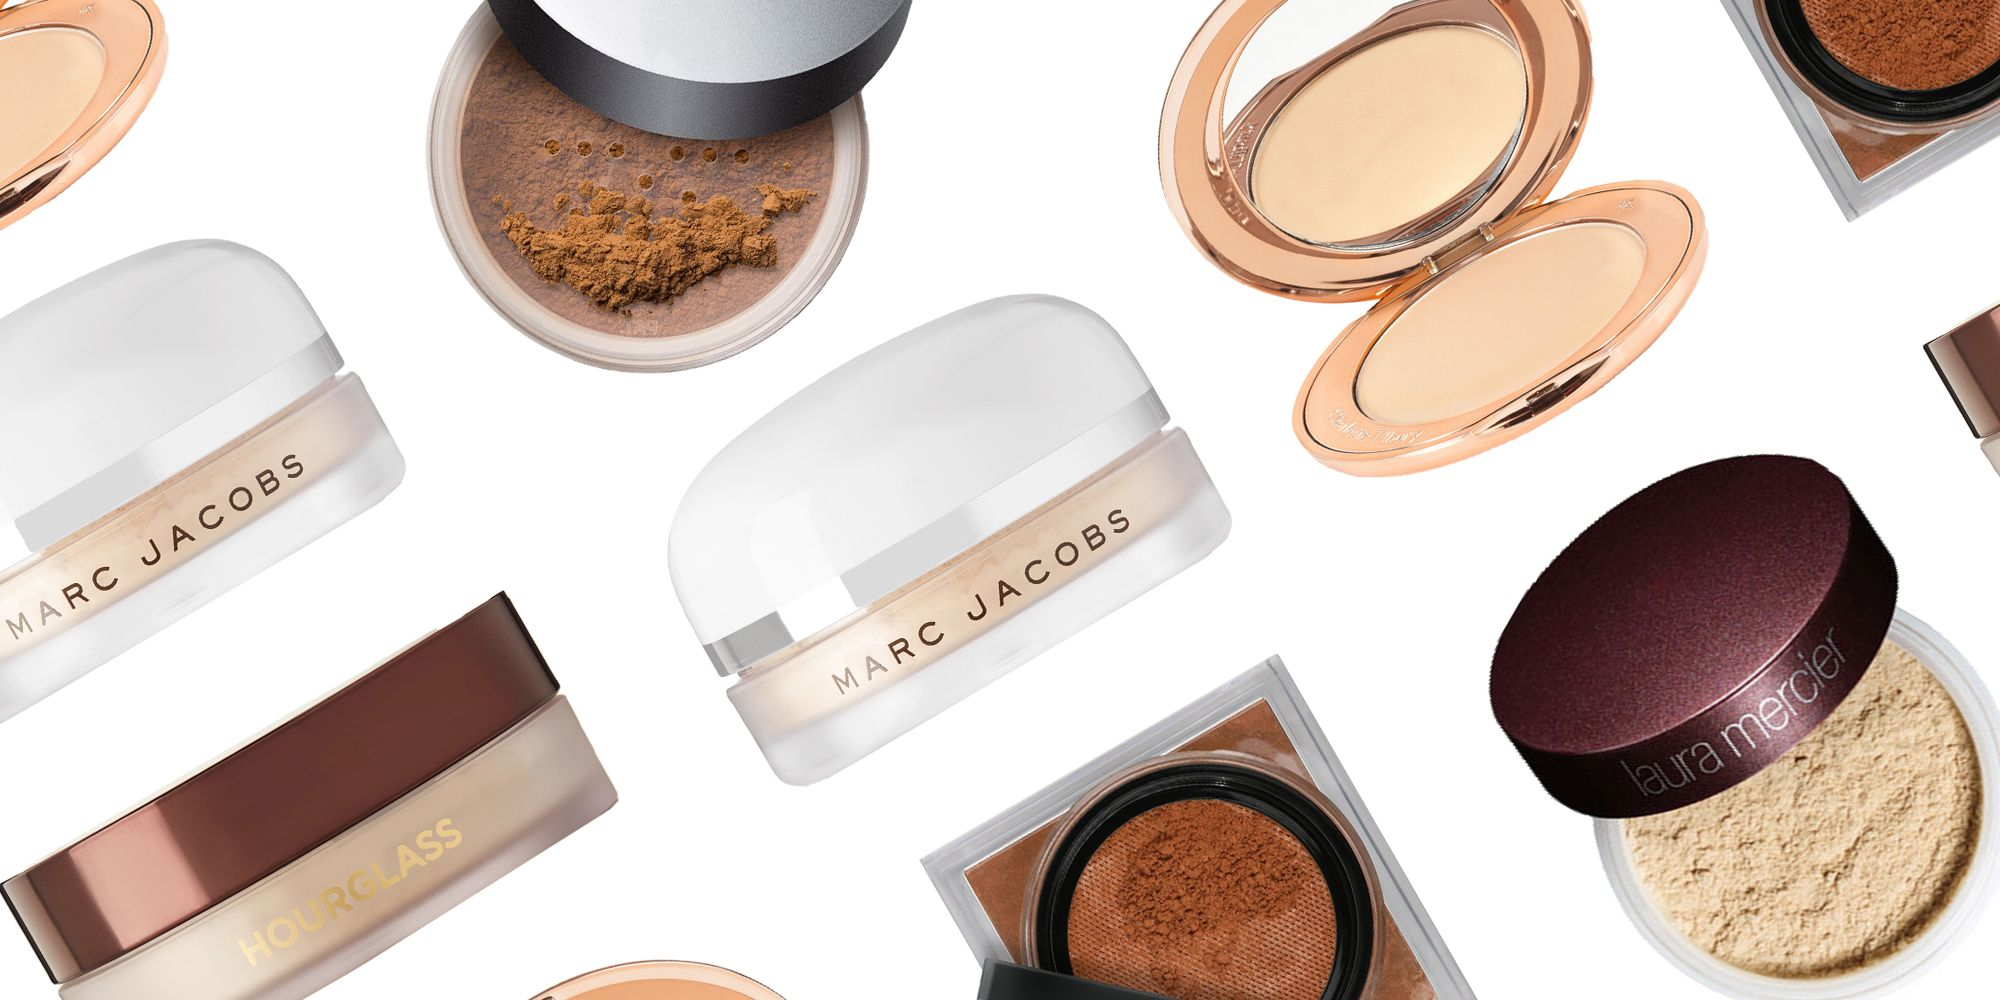 The Best Setting Powders for Oily, Sweaty SummerSkin The Best Setting Powders for Oily, Sweaty SummerSkin new foto